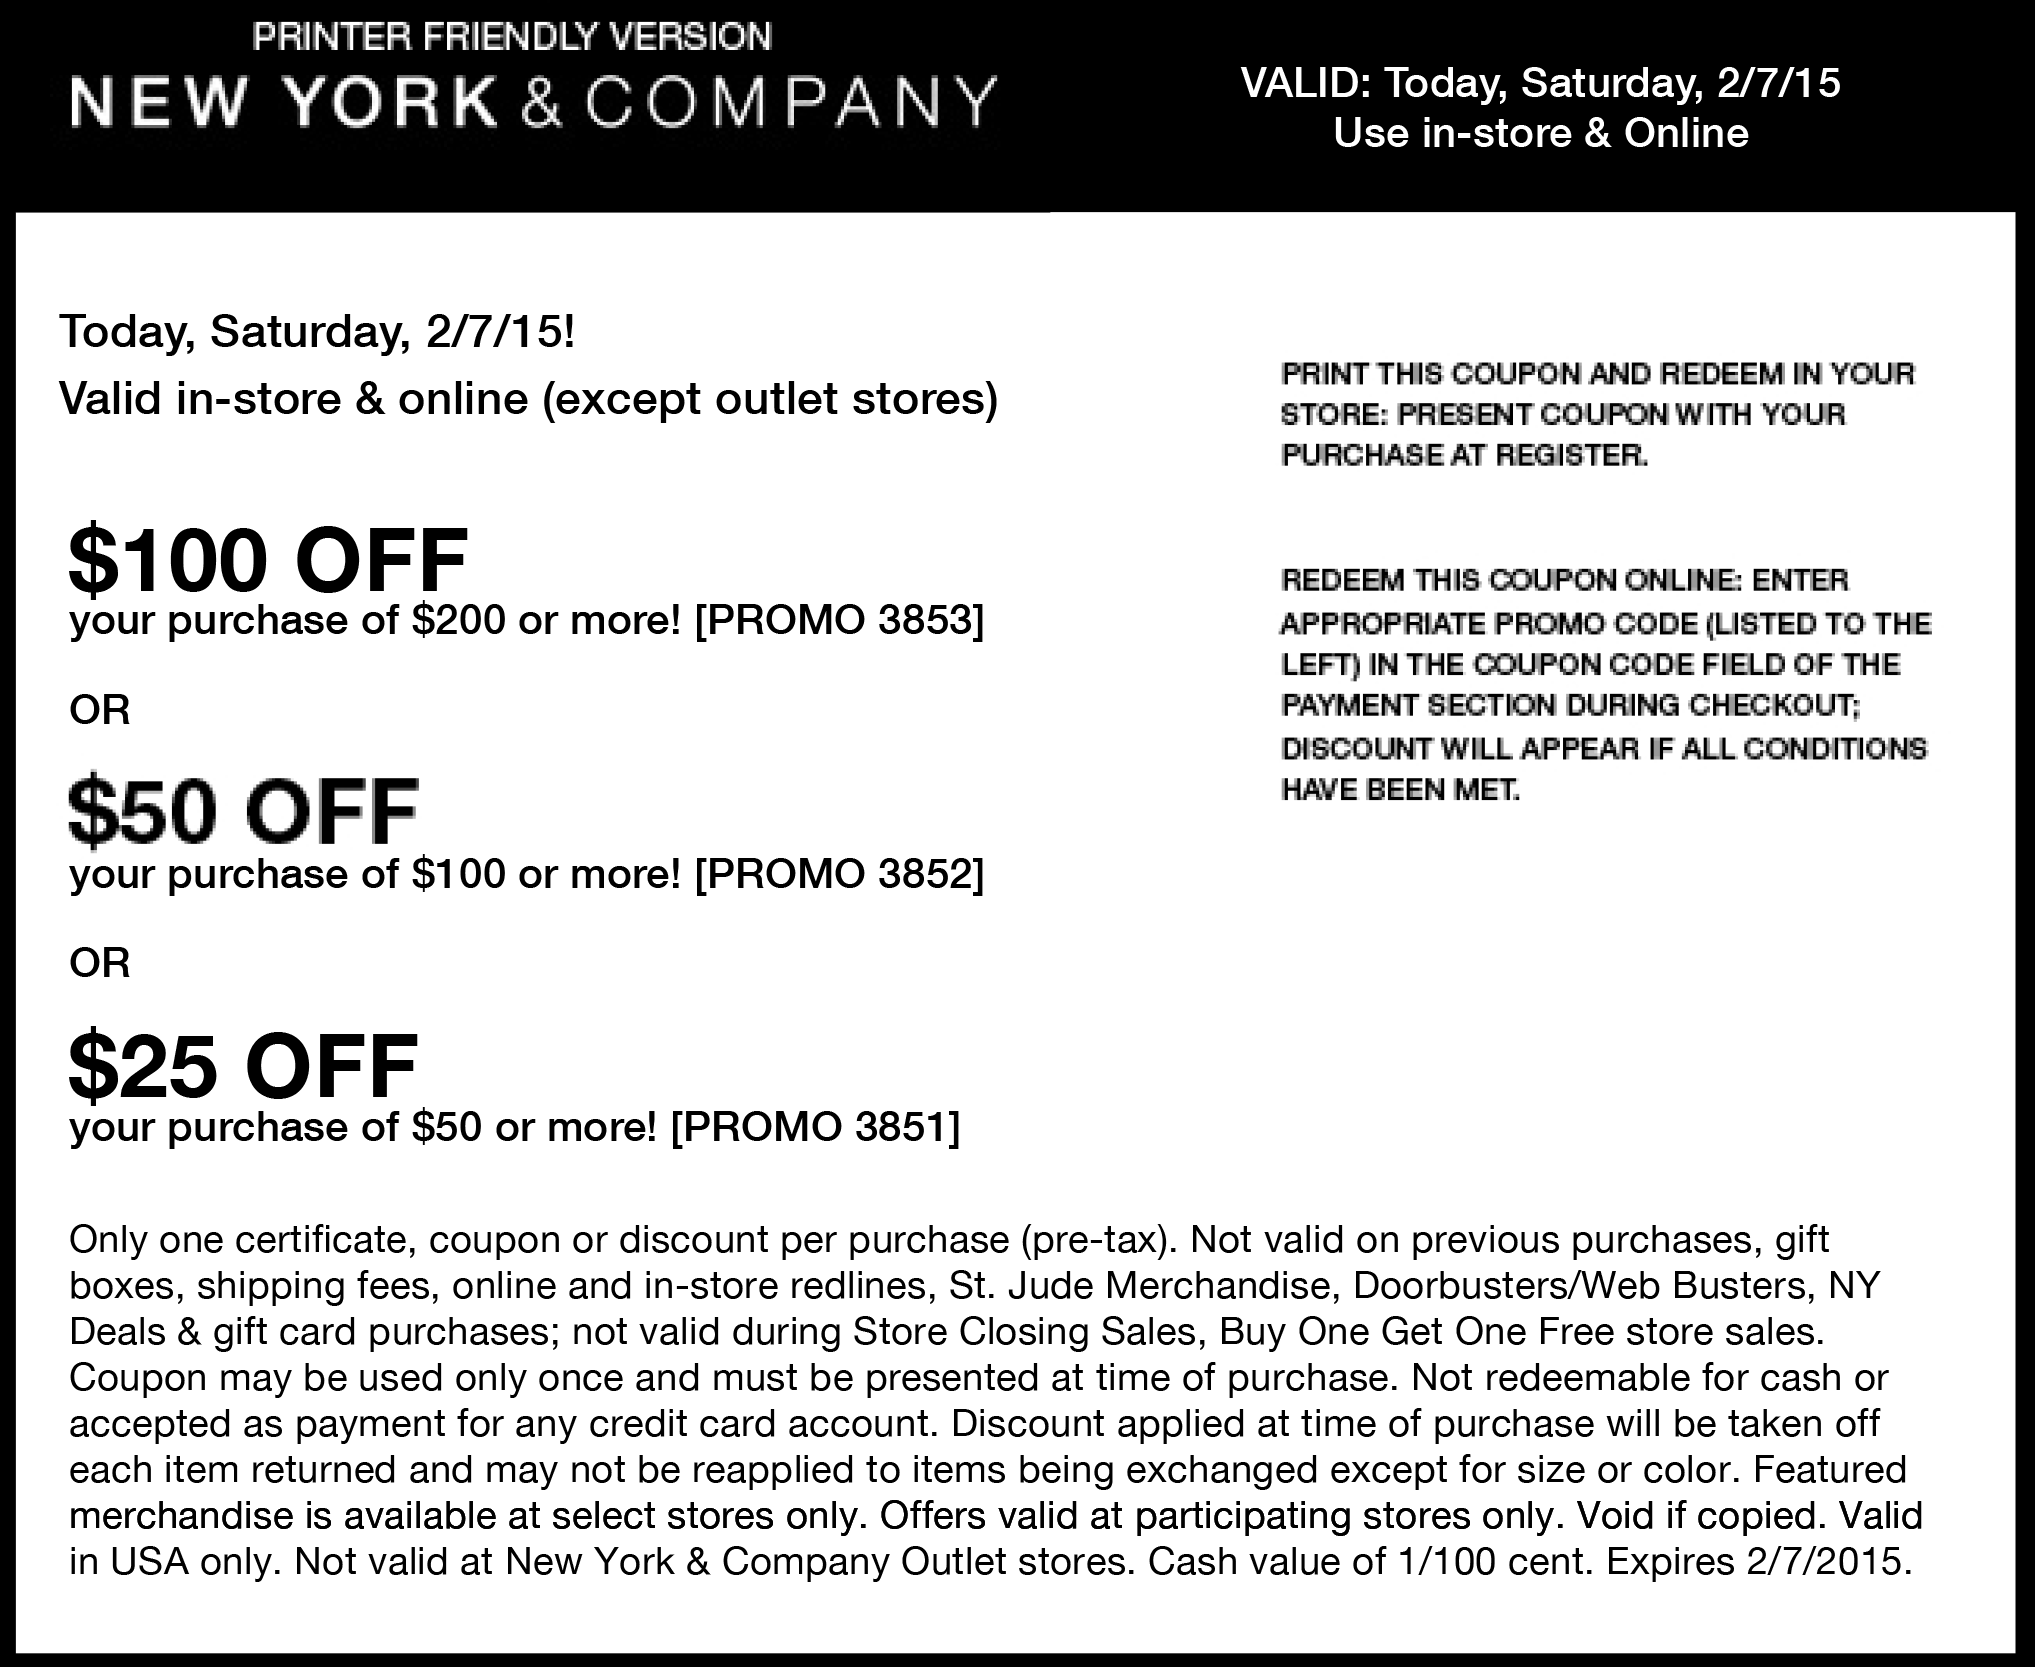 New York & Company Coupon May 2017 $25 off $50 & more today at New York & Company, or online via promo code 3851